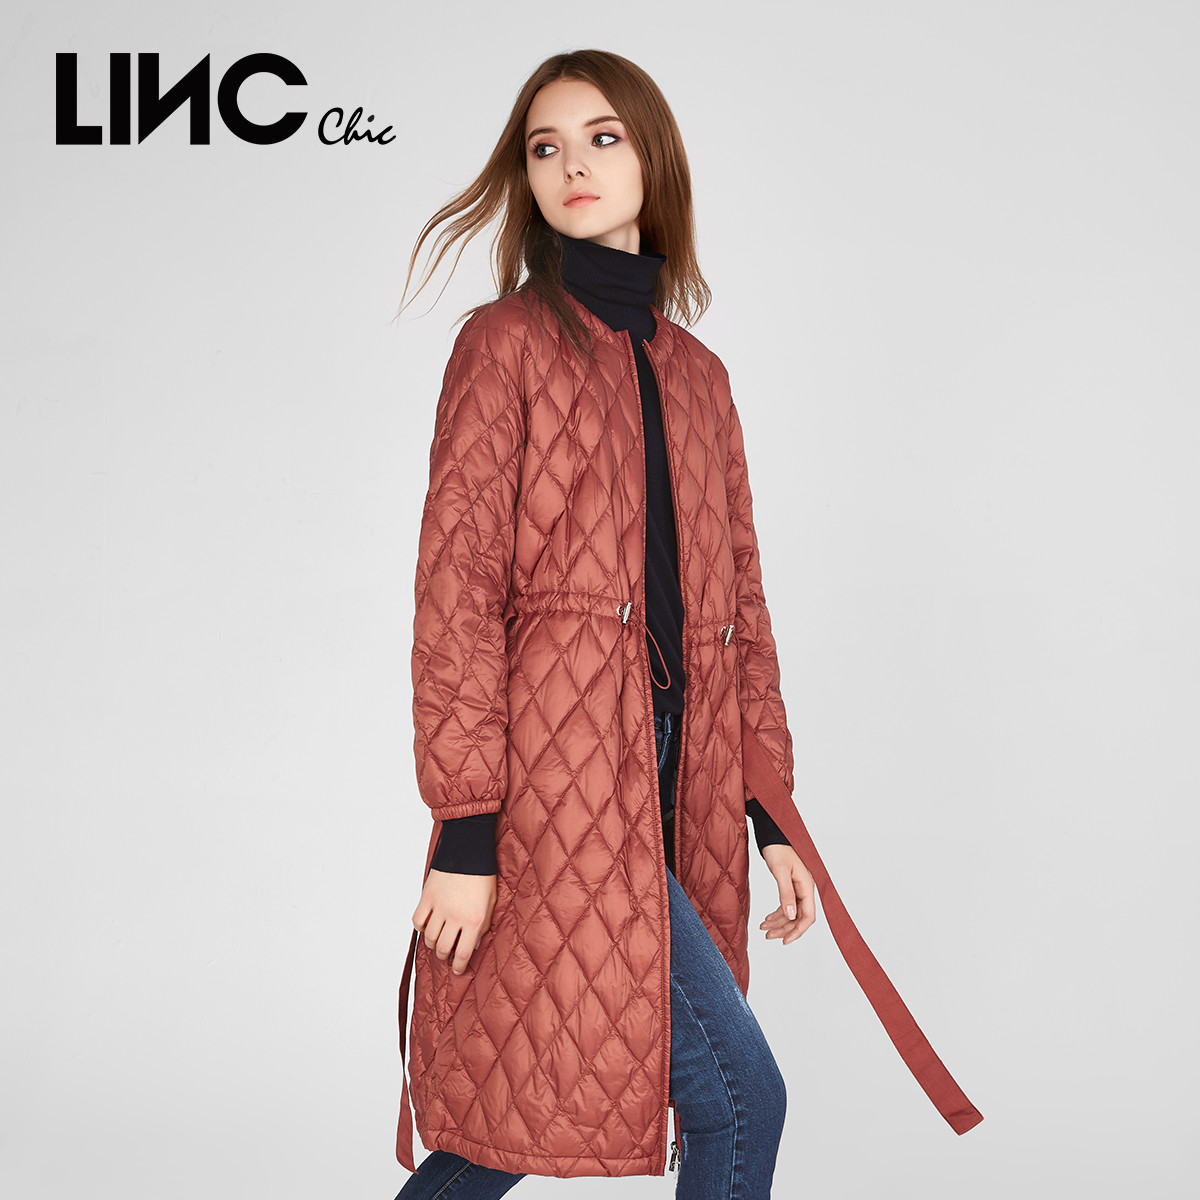 Linc golden badminton autumn and winter new coat style long over knee loose light down women's 8313450